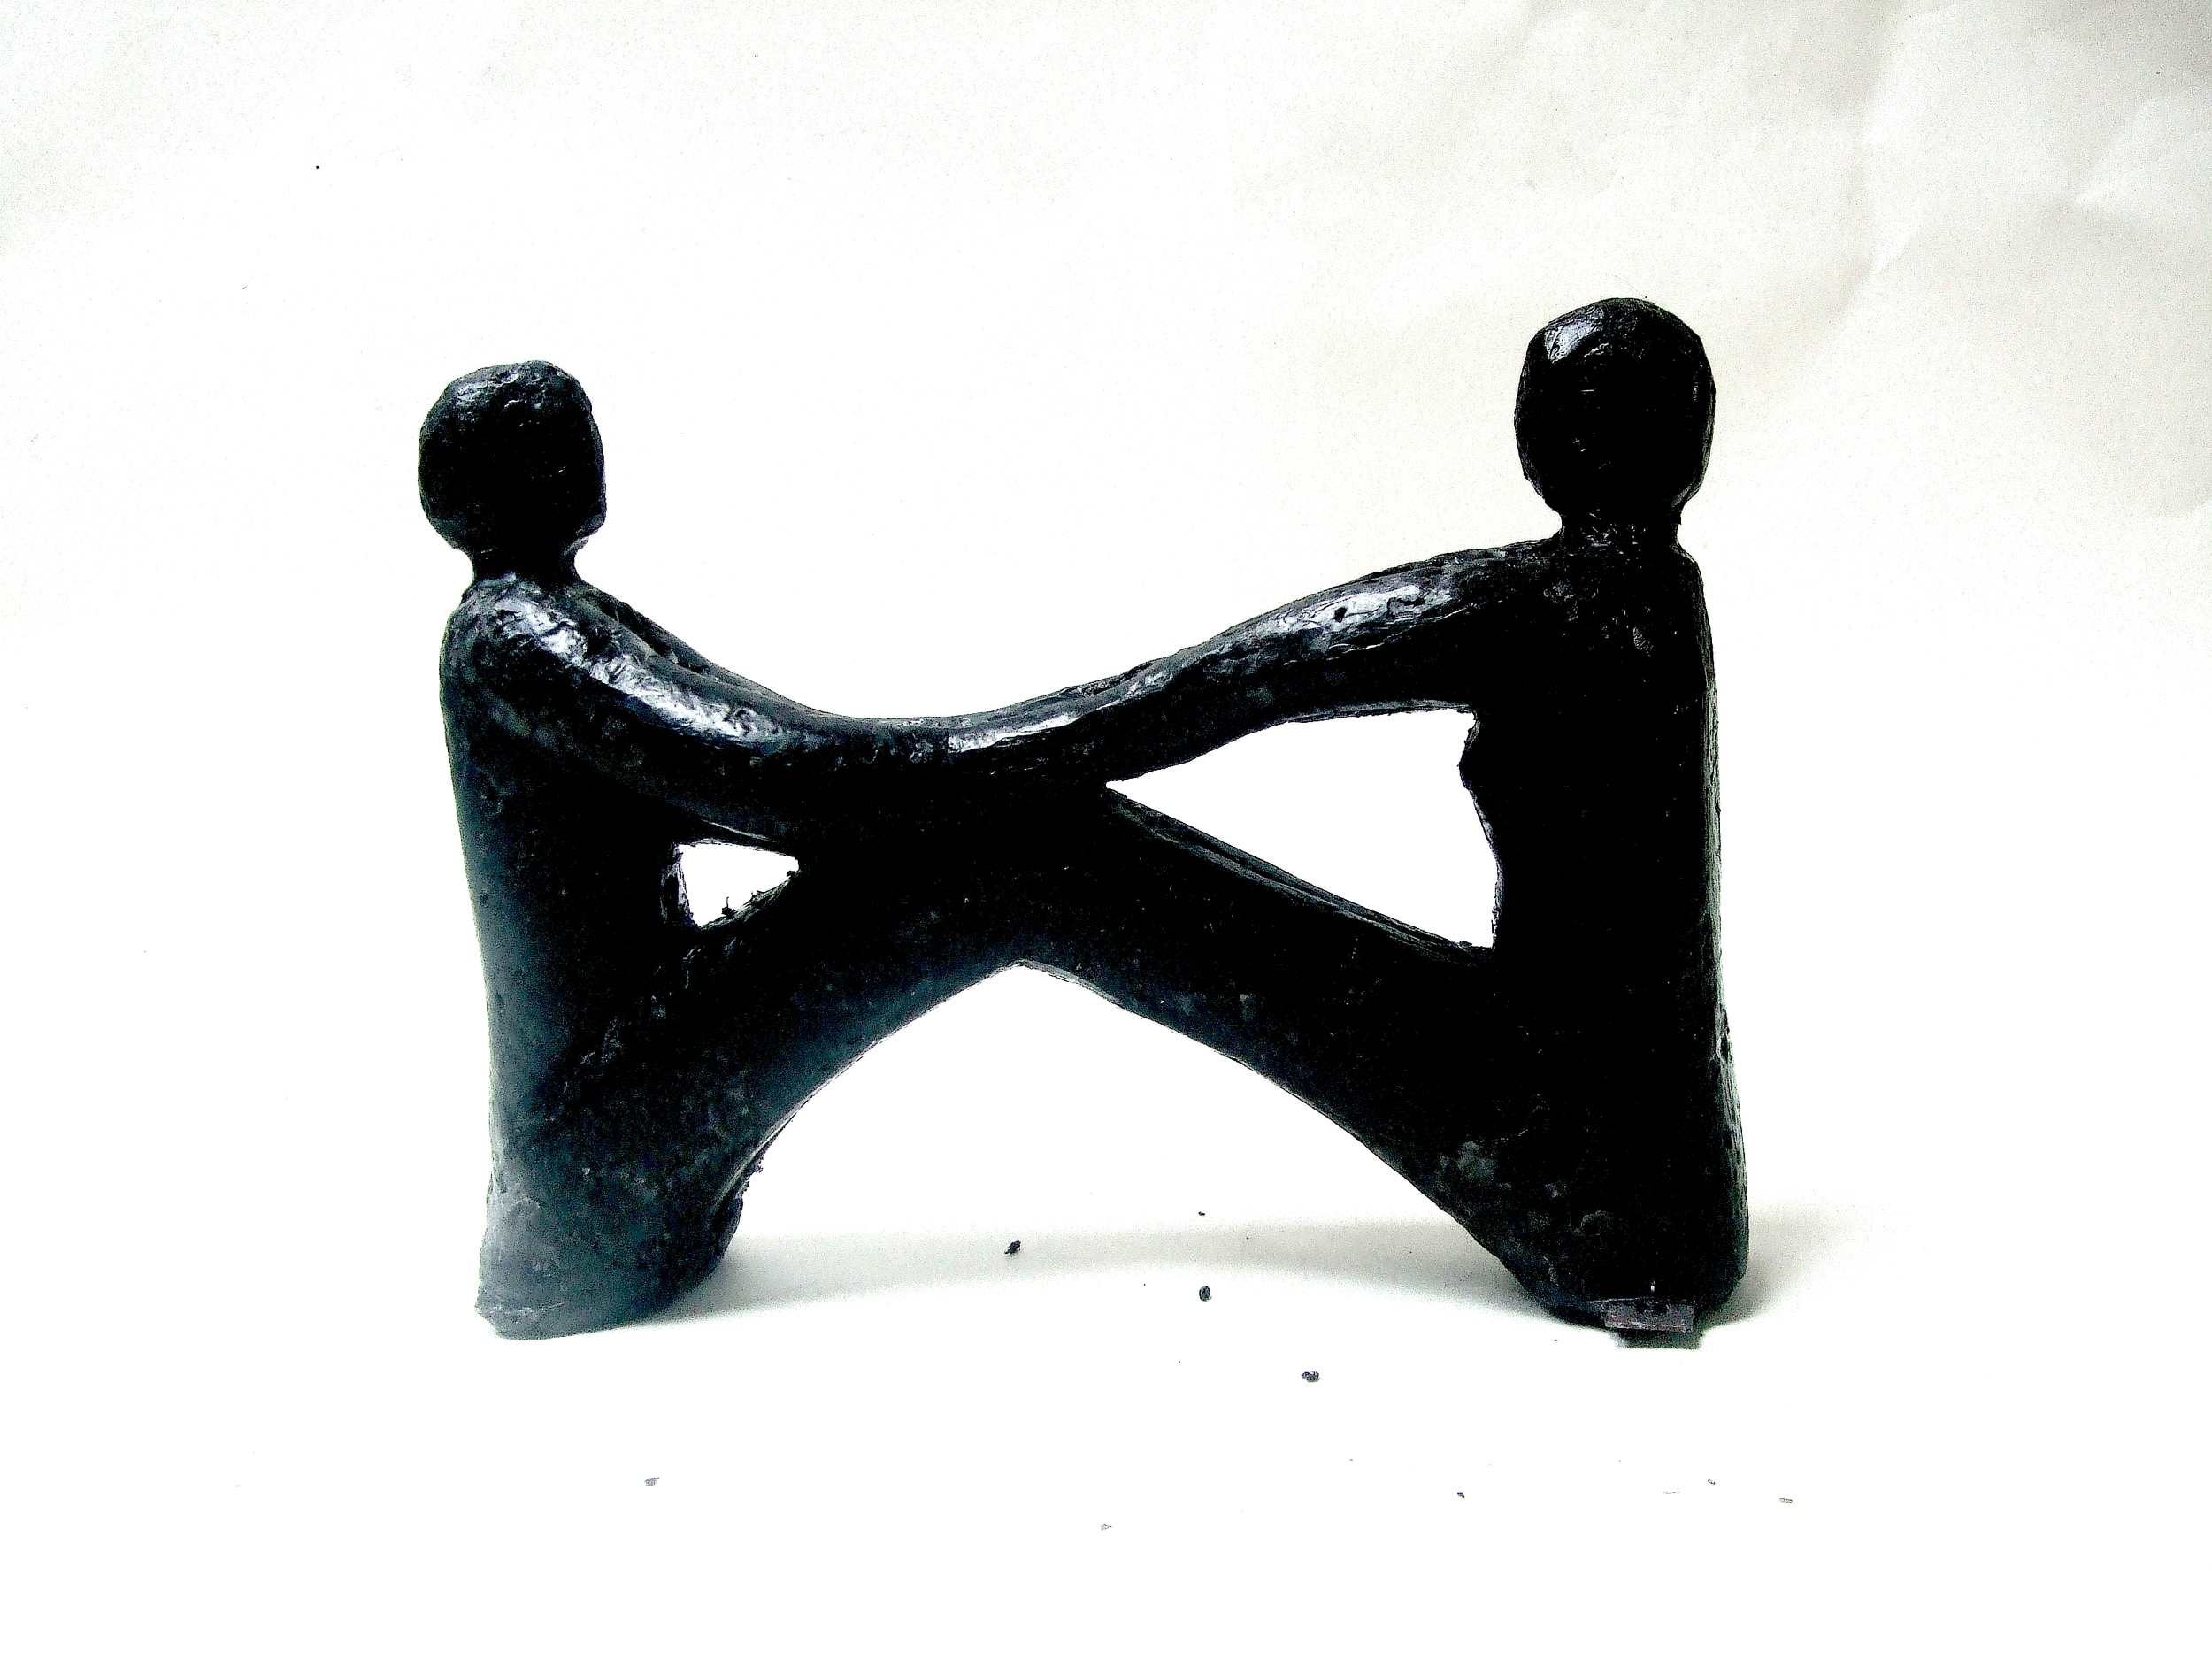 maquettes March 2014 023.JPG